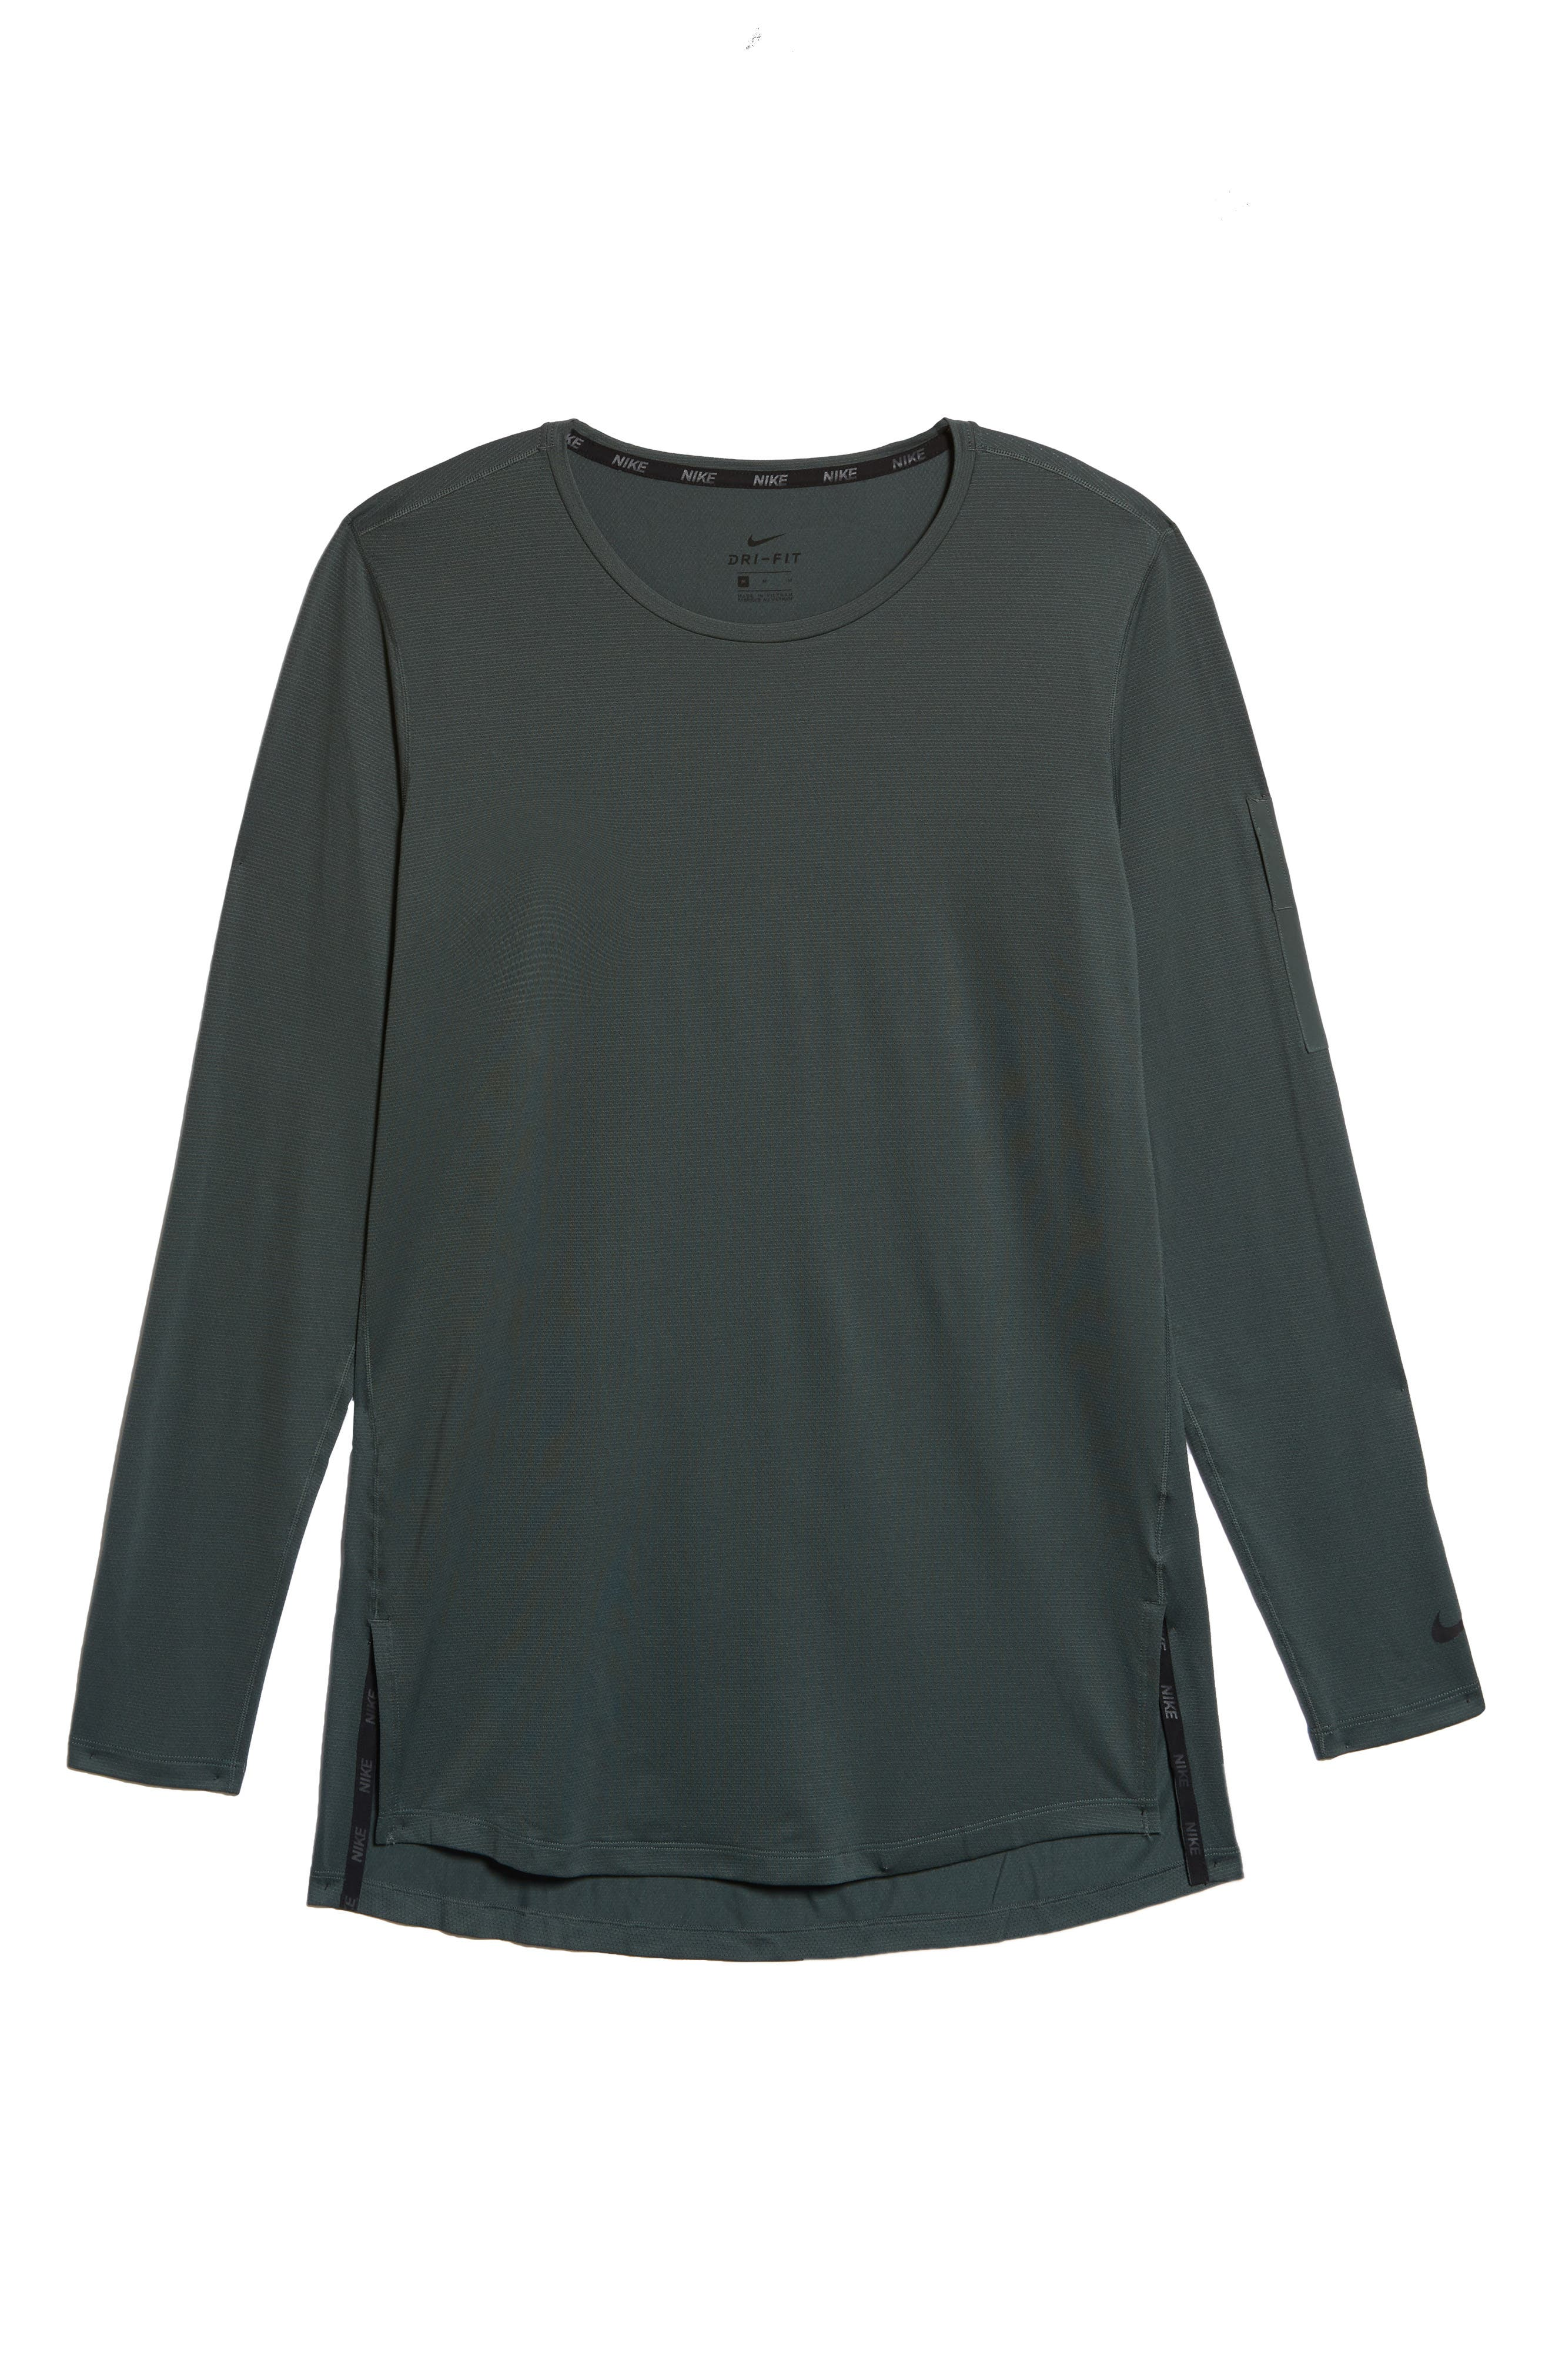 Pro Utility Fitted Training Top,                             Alternate thumbnail 6, color,                             Vintage Green/ Black